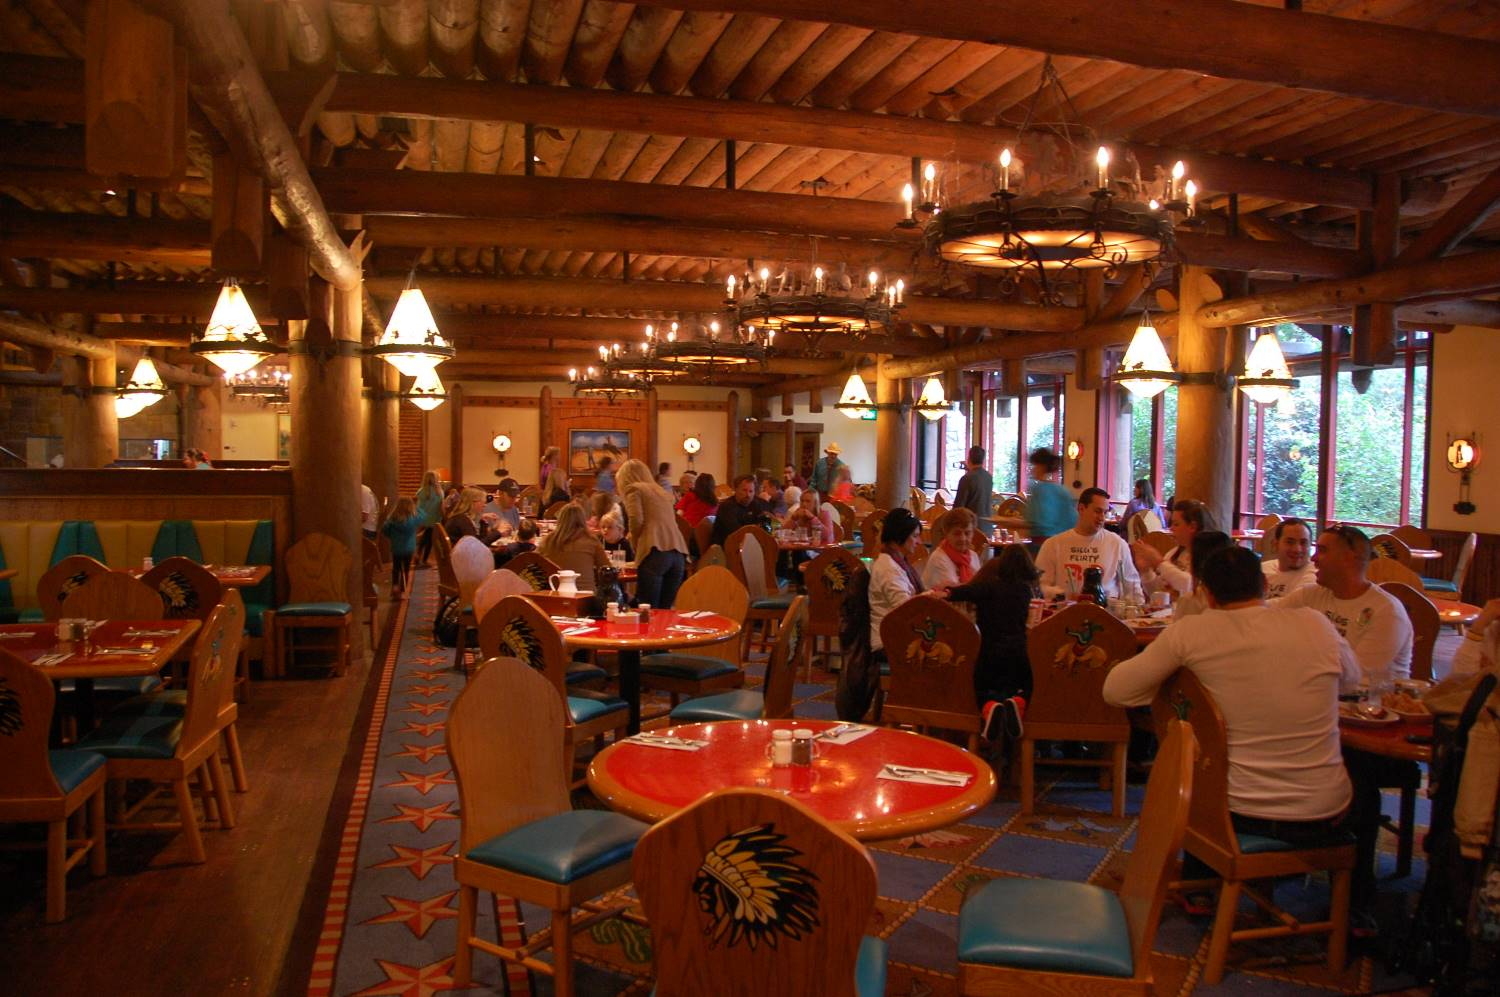 A view inside Whispering Canyon, a restaurant at Disney's Wilderness Lodge hotel.